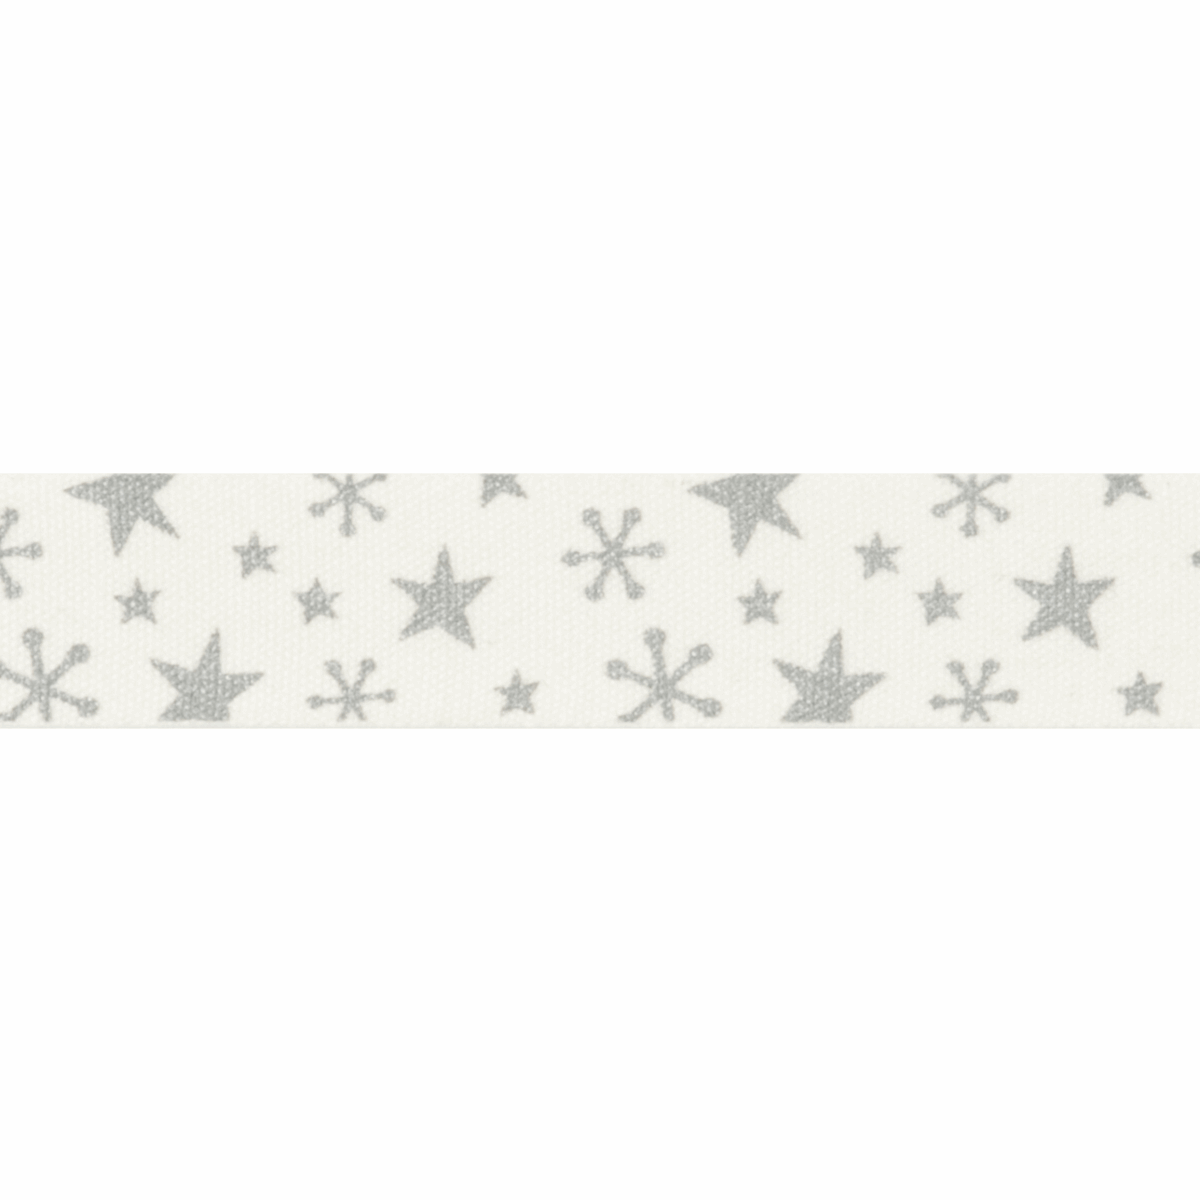 Picture of Bowtique Christmas: Metallic Stars: Silver: 25m x 15mm